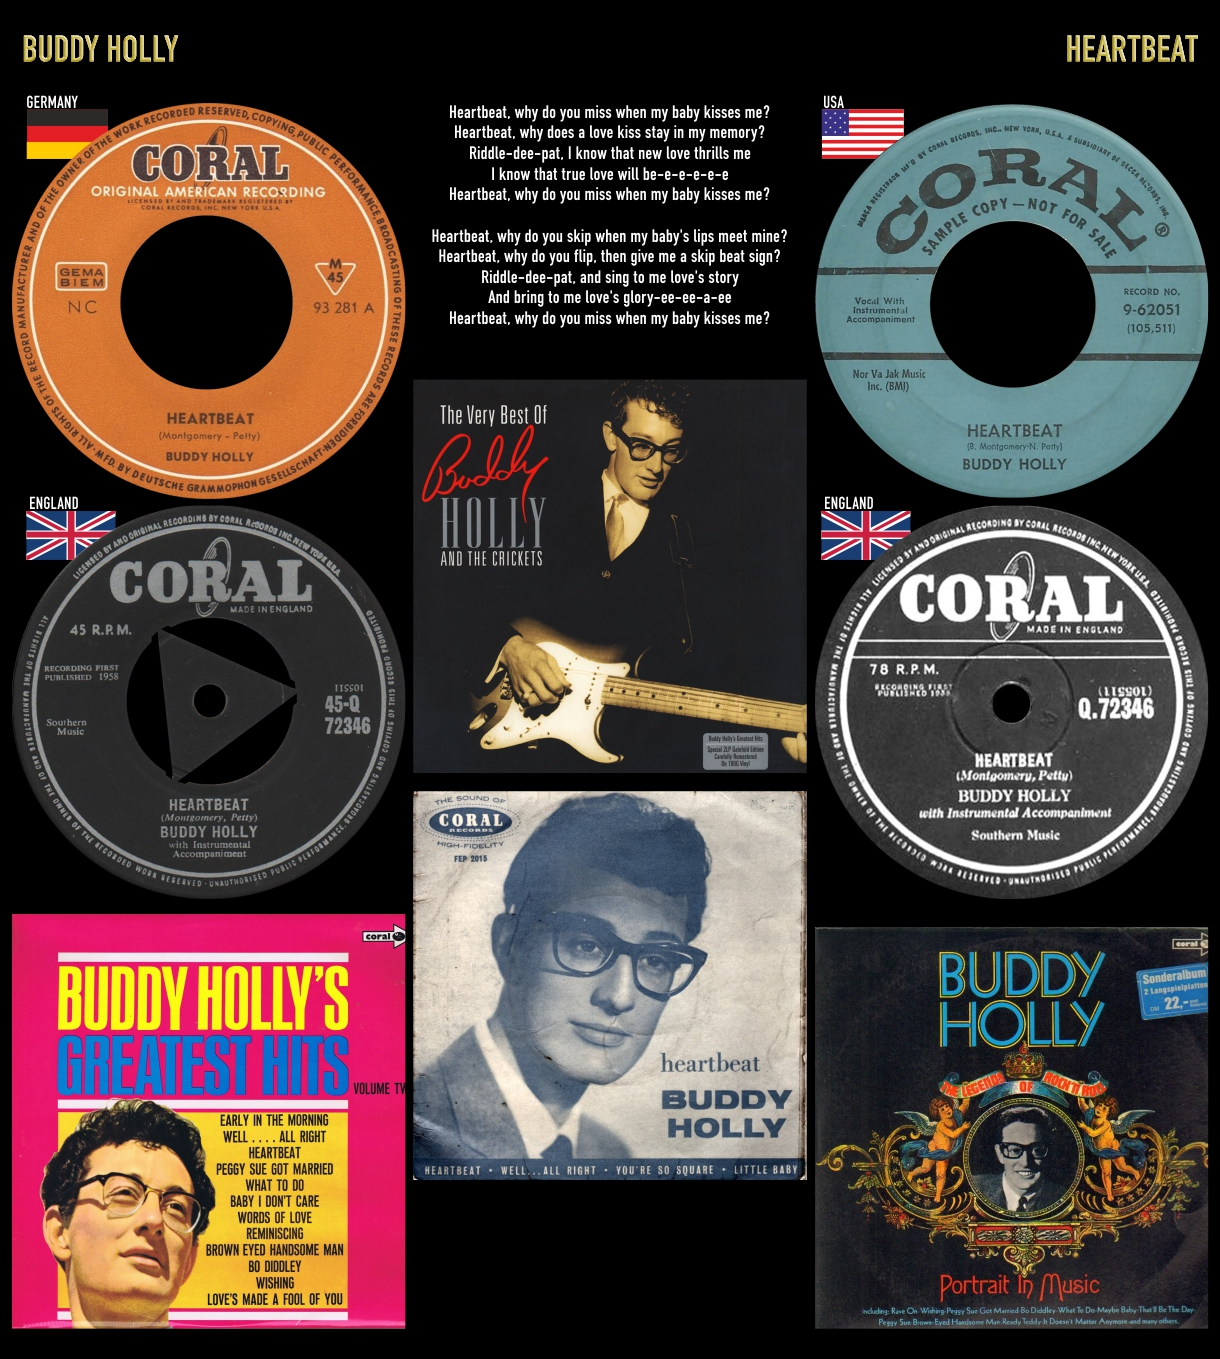 581227_Buddy Holly_Heartbeat